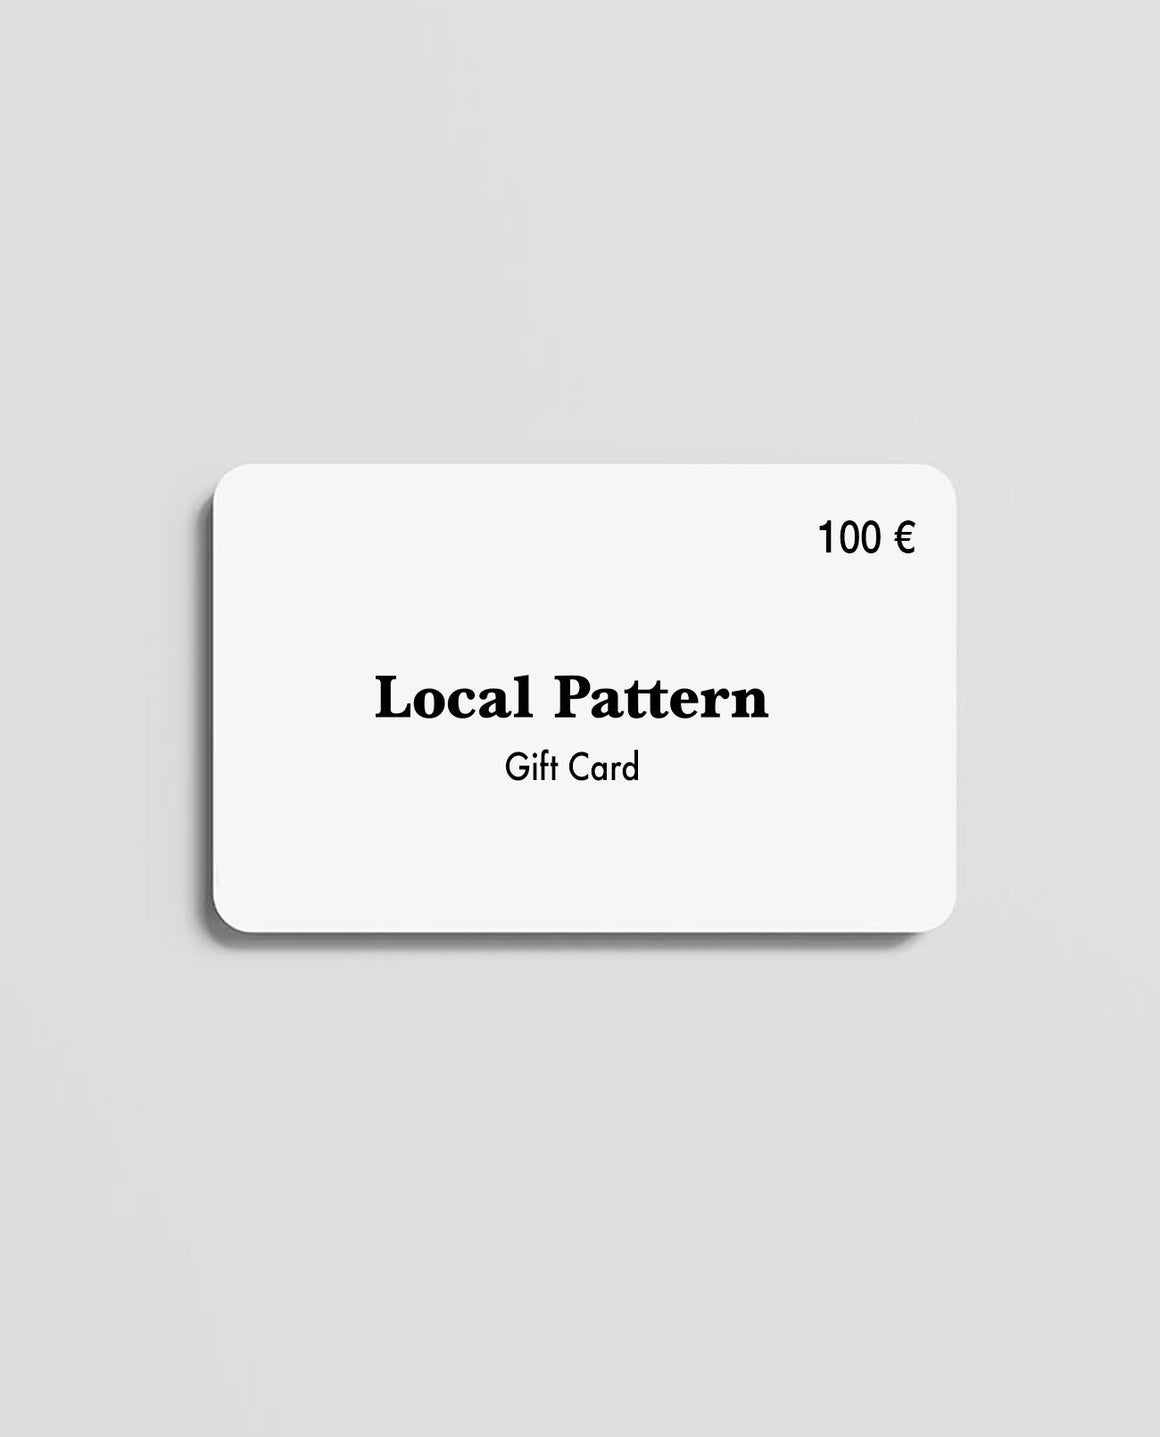 Gift Card - Local Pattern